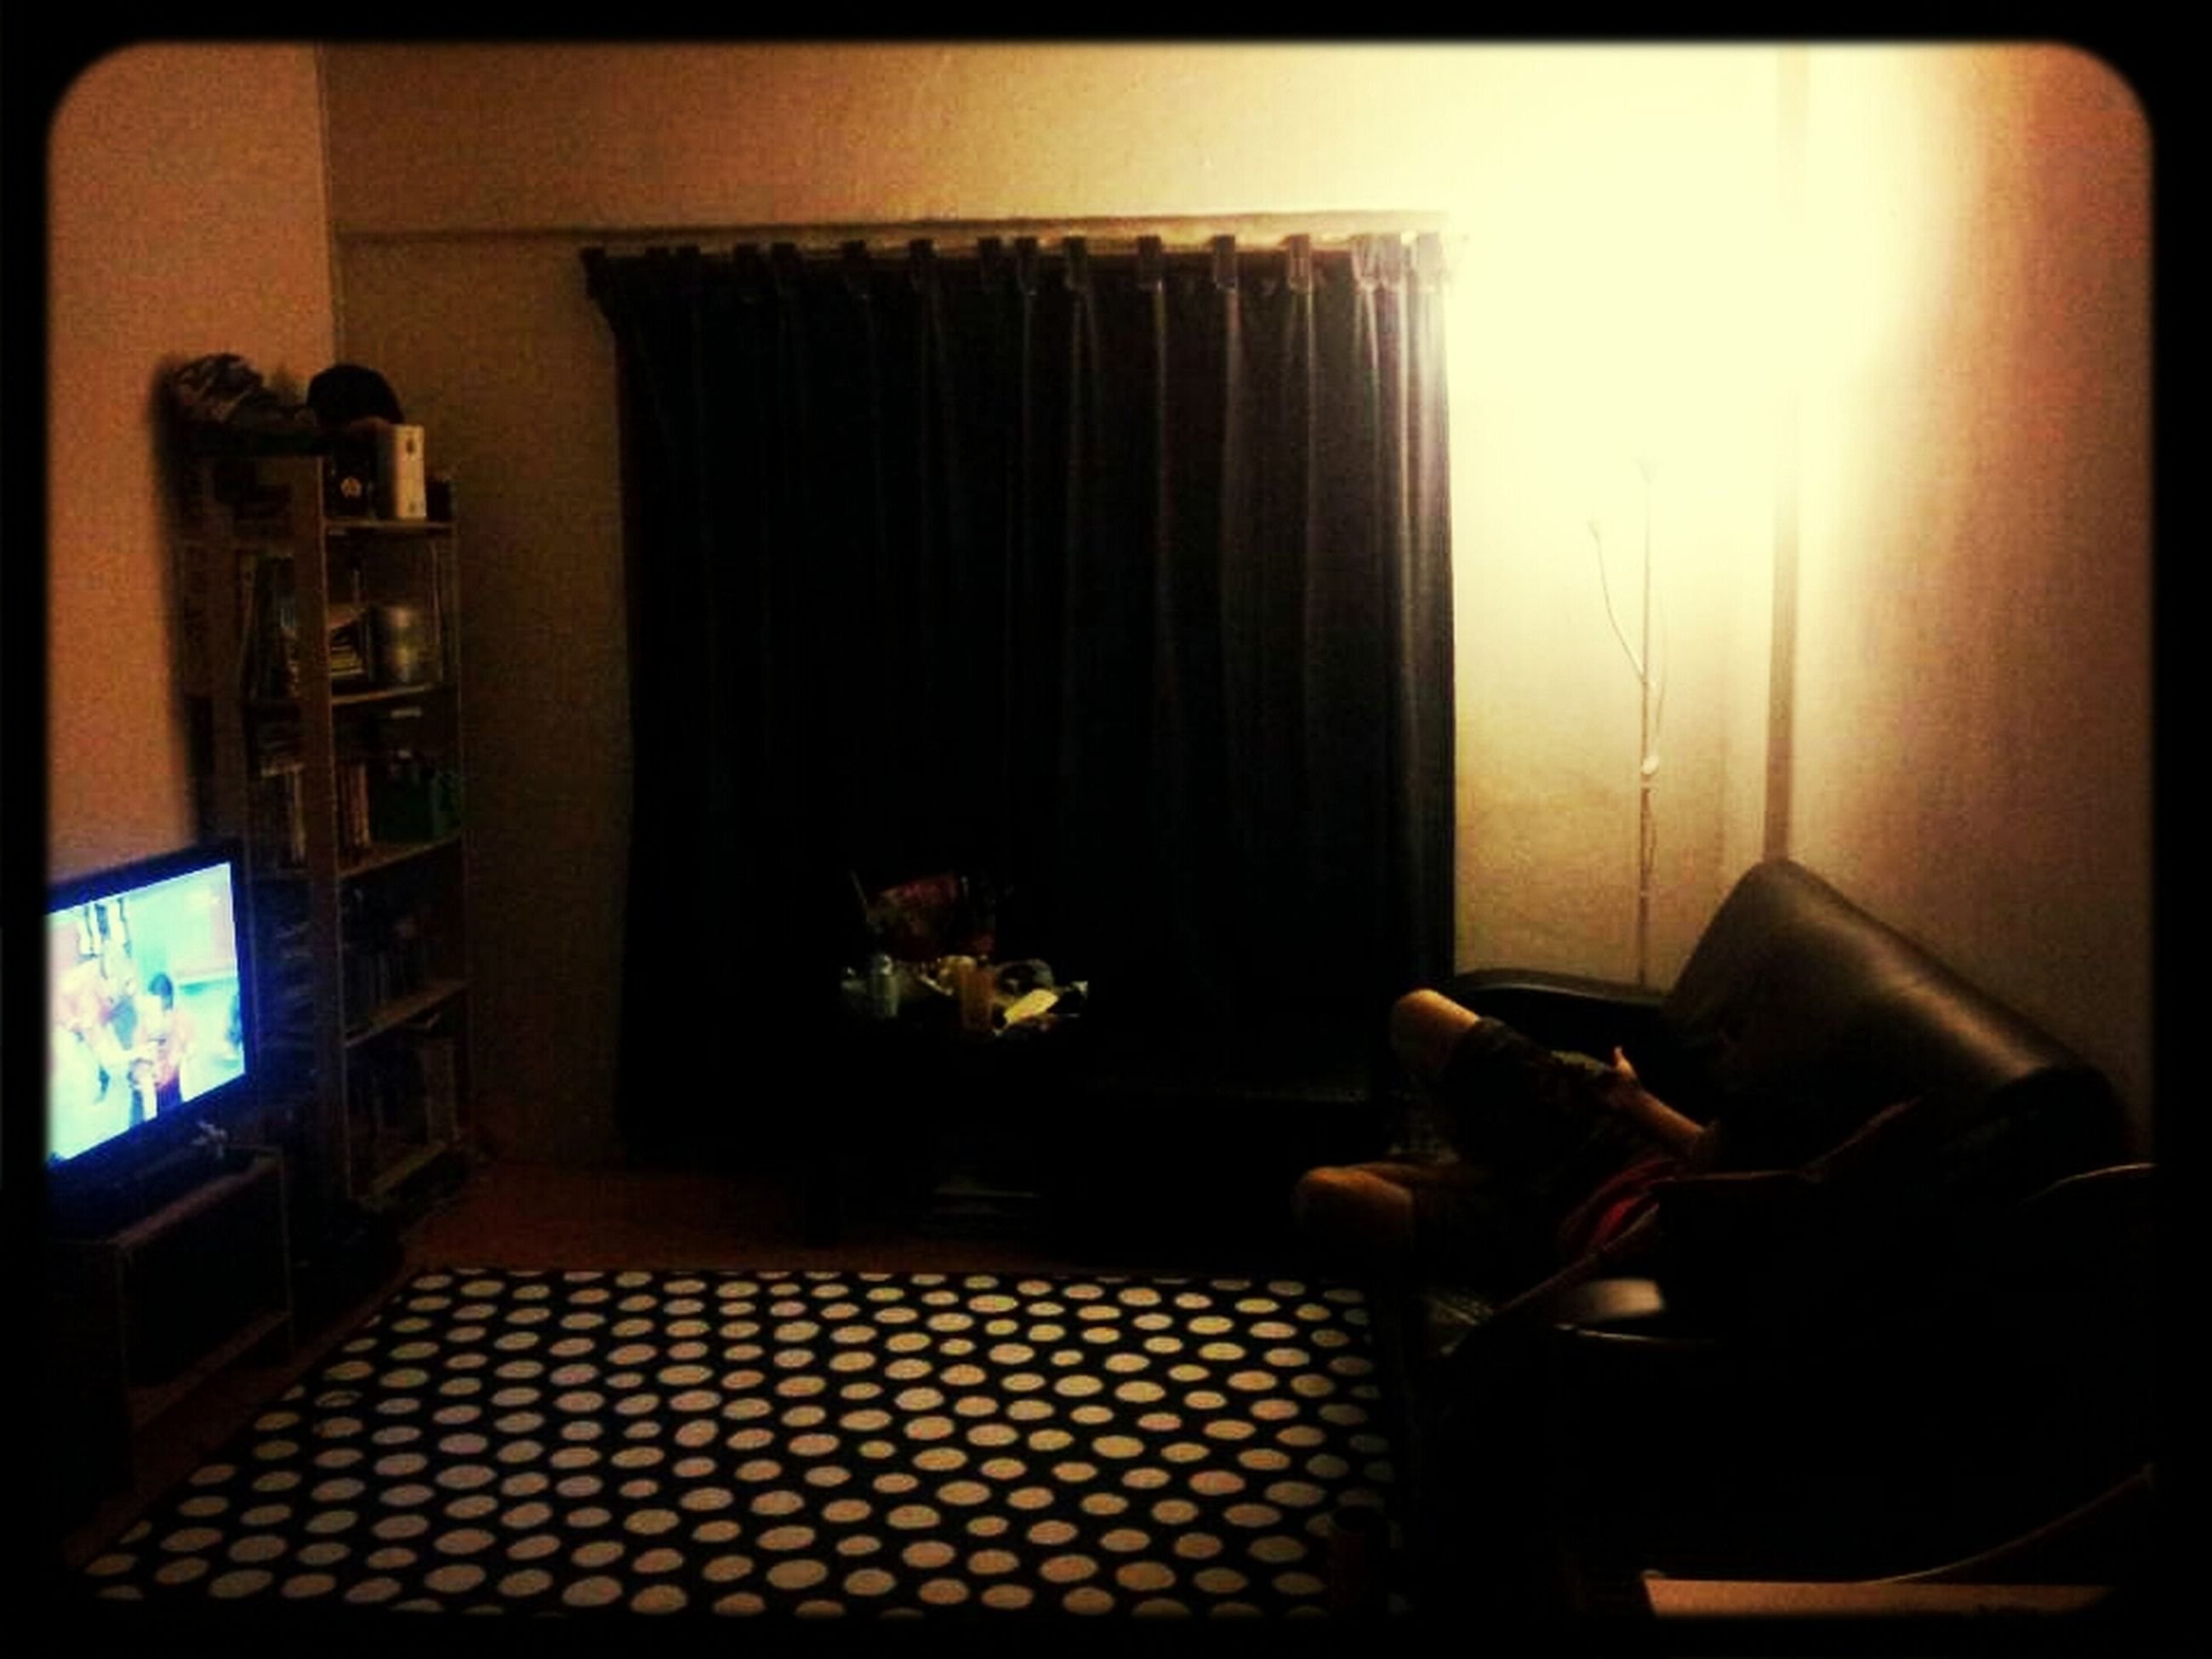 indoors, home interior, window, domestic room, curtain, auto post production filter, house, transfer print, living room, chair, sofa, table, furniture, room, home showcase interior, domestic life, absence, home, open, no people